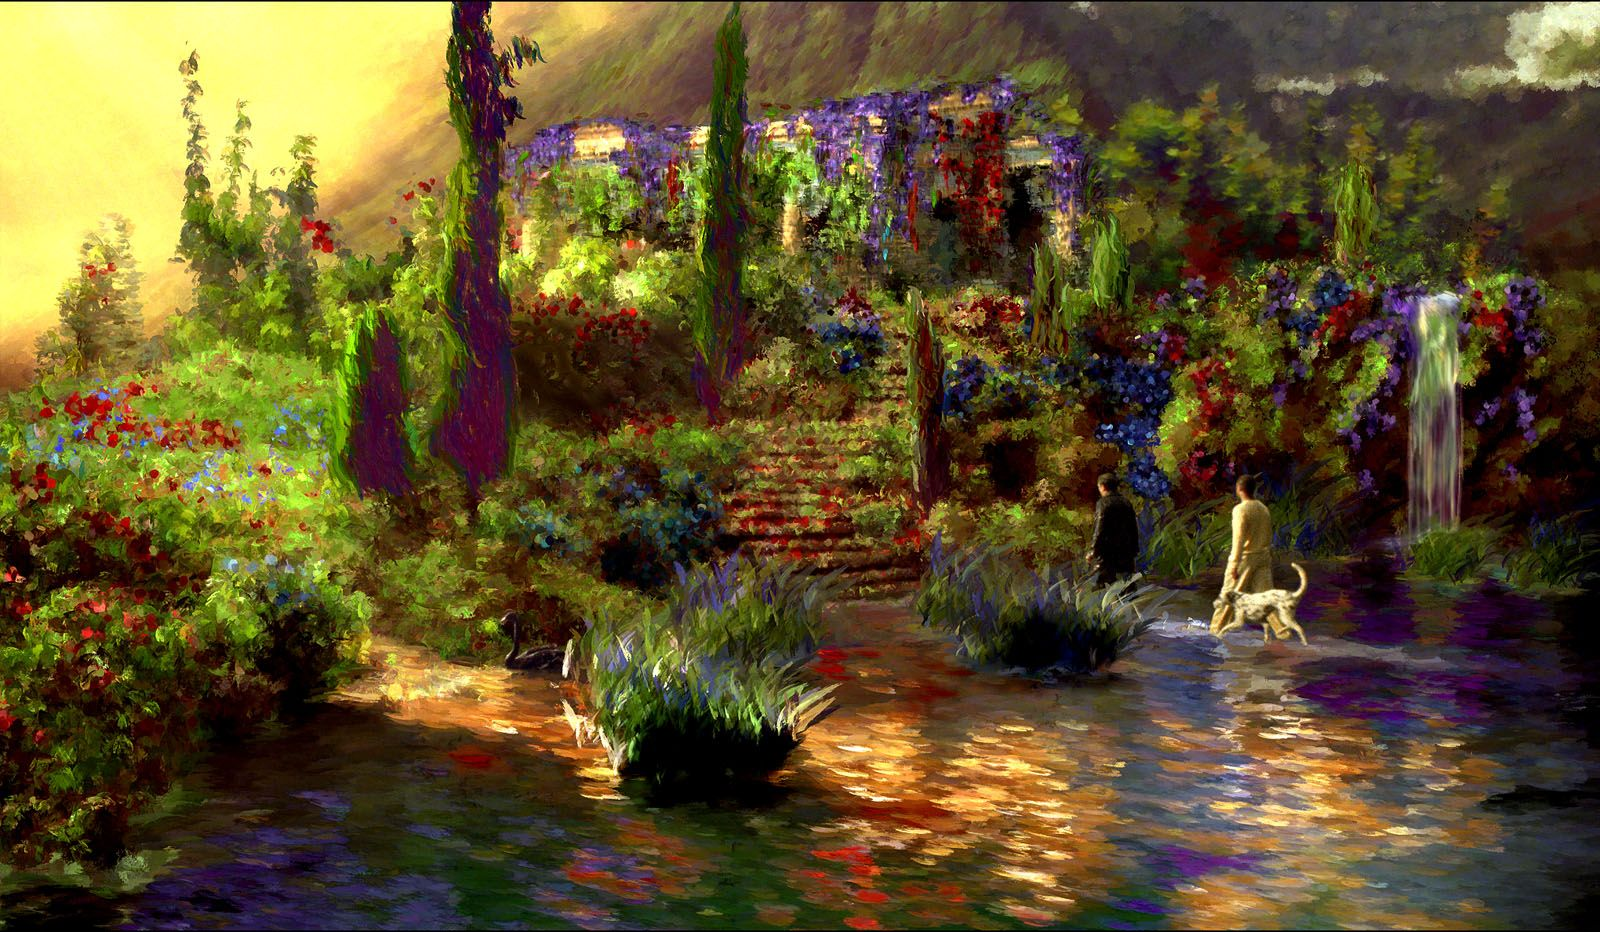 What dreams may come images galleries for Www dreamhome com